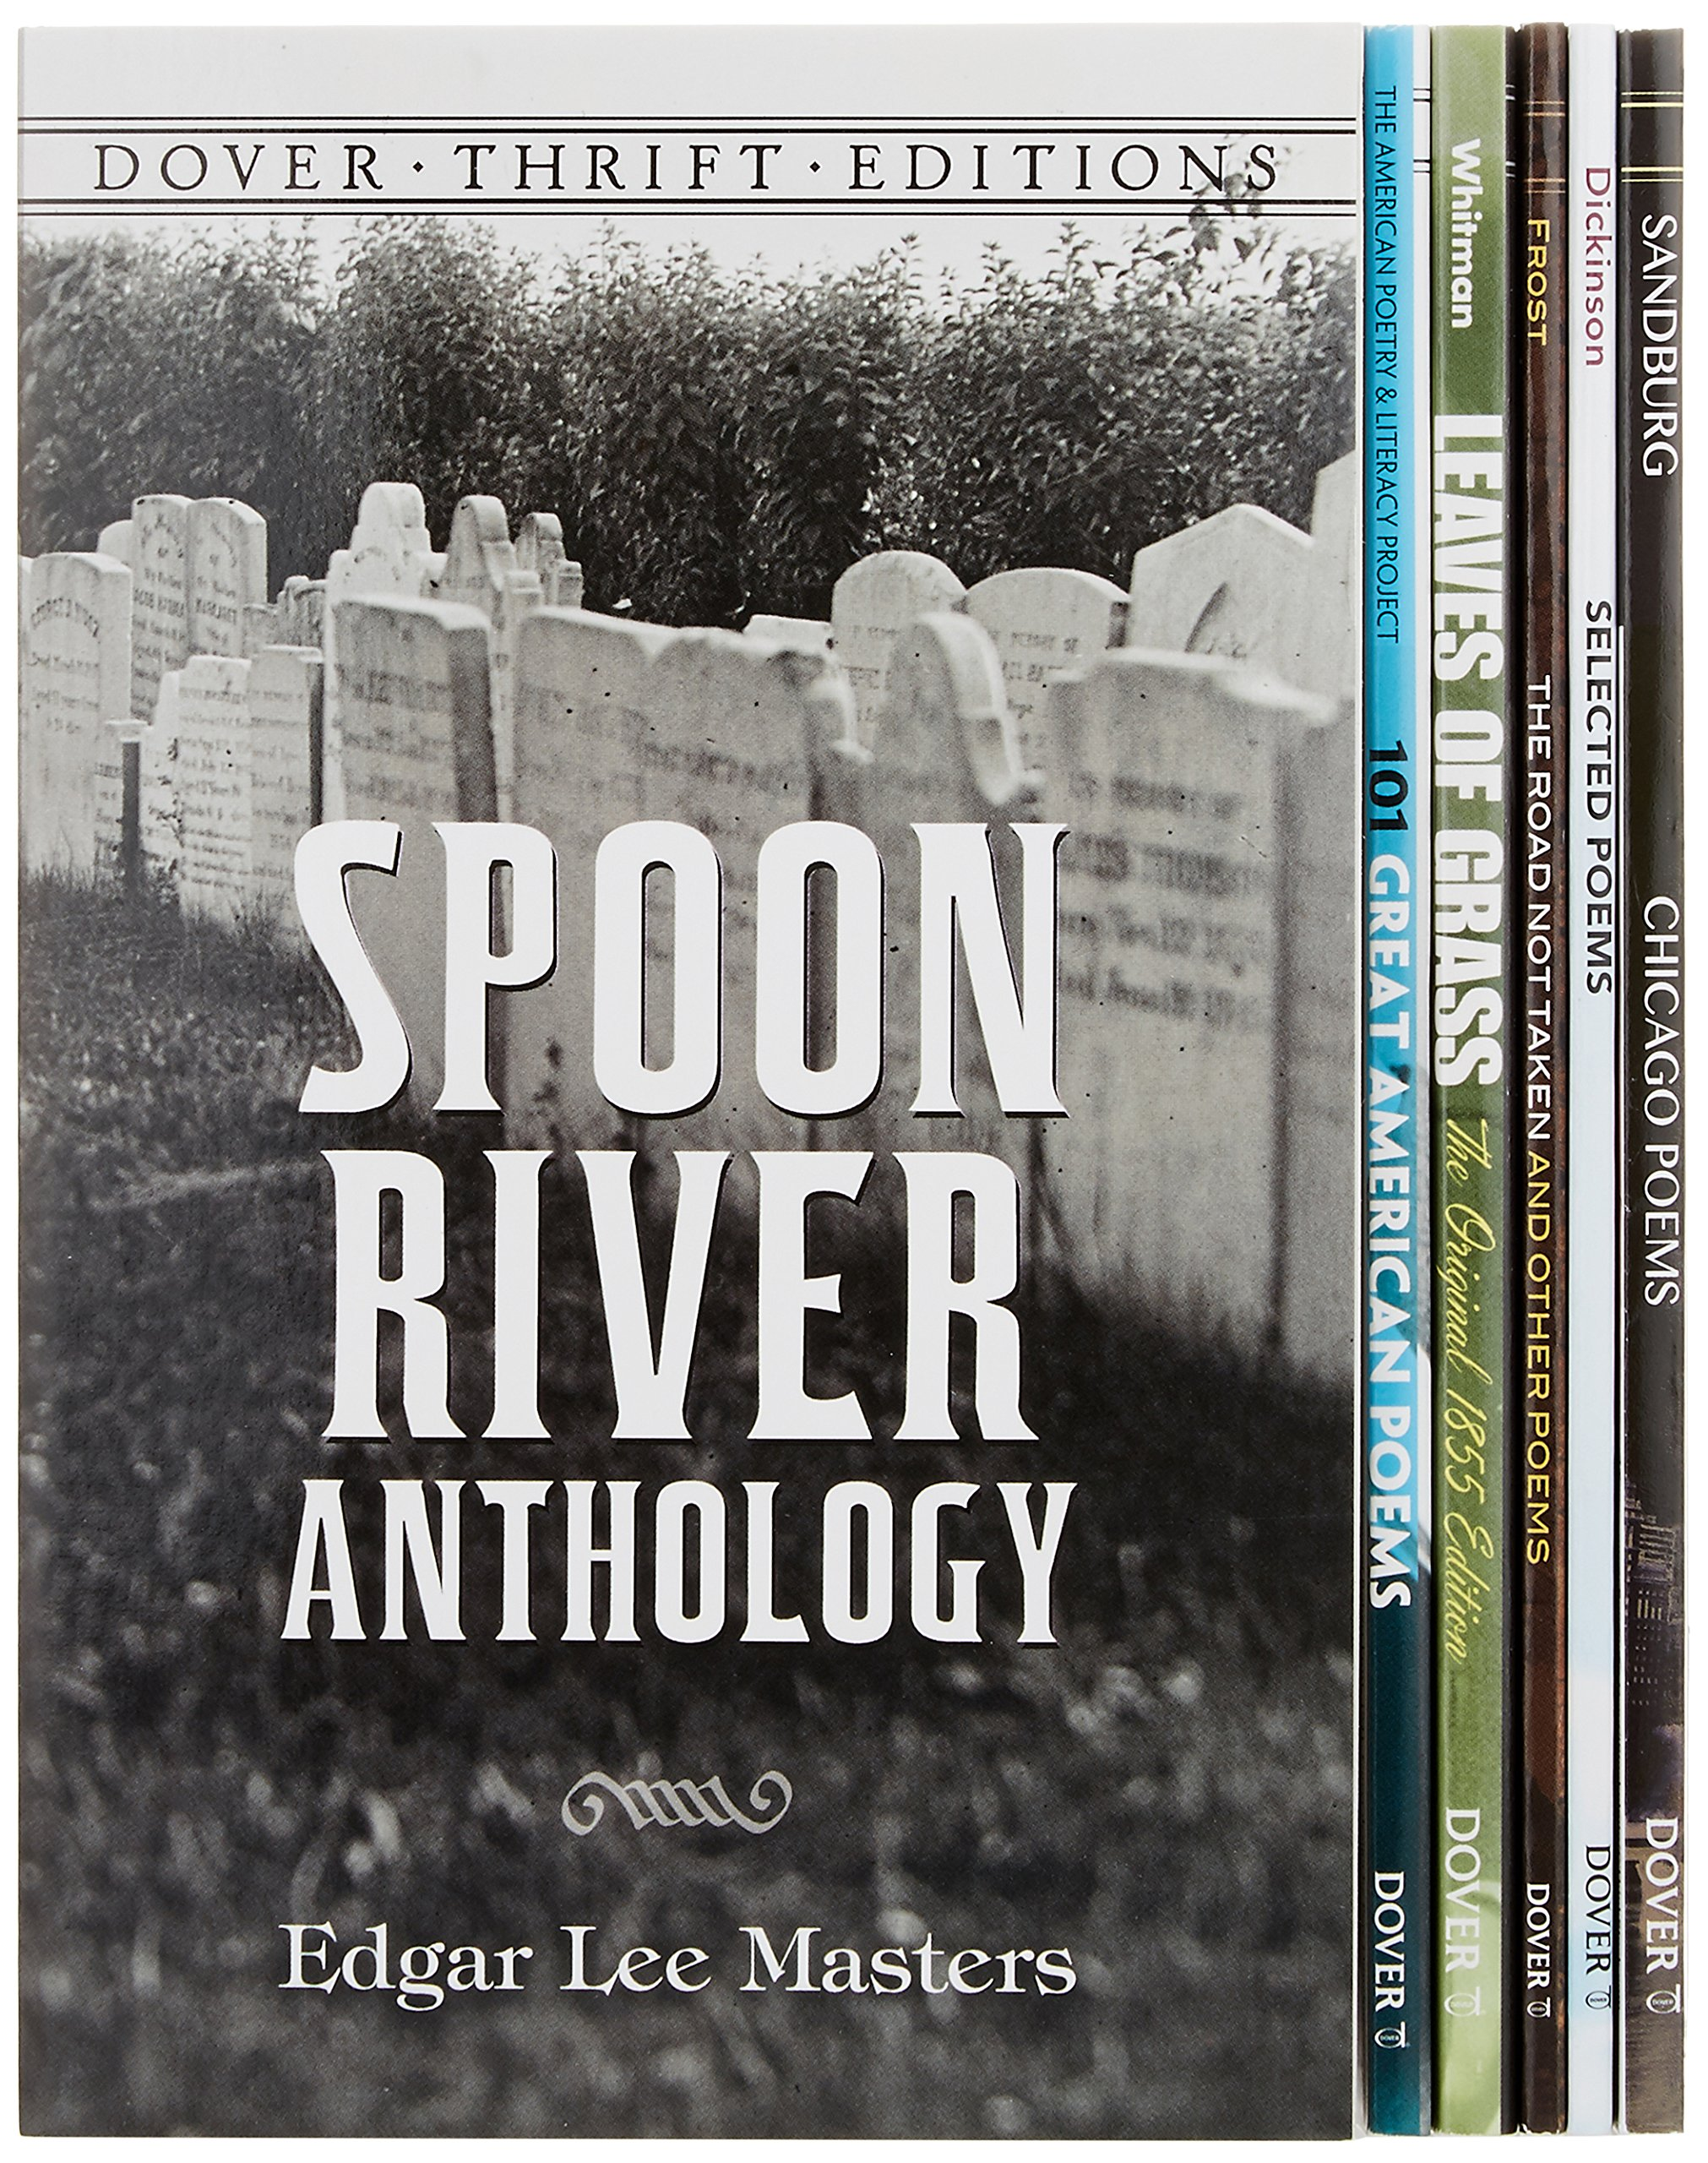 Amazon.com: American Poetry Boxed Set (Dover Thrift Editions)  (9780486807423): Dover: Books